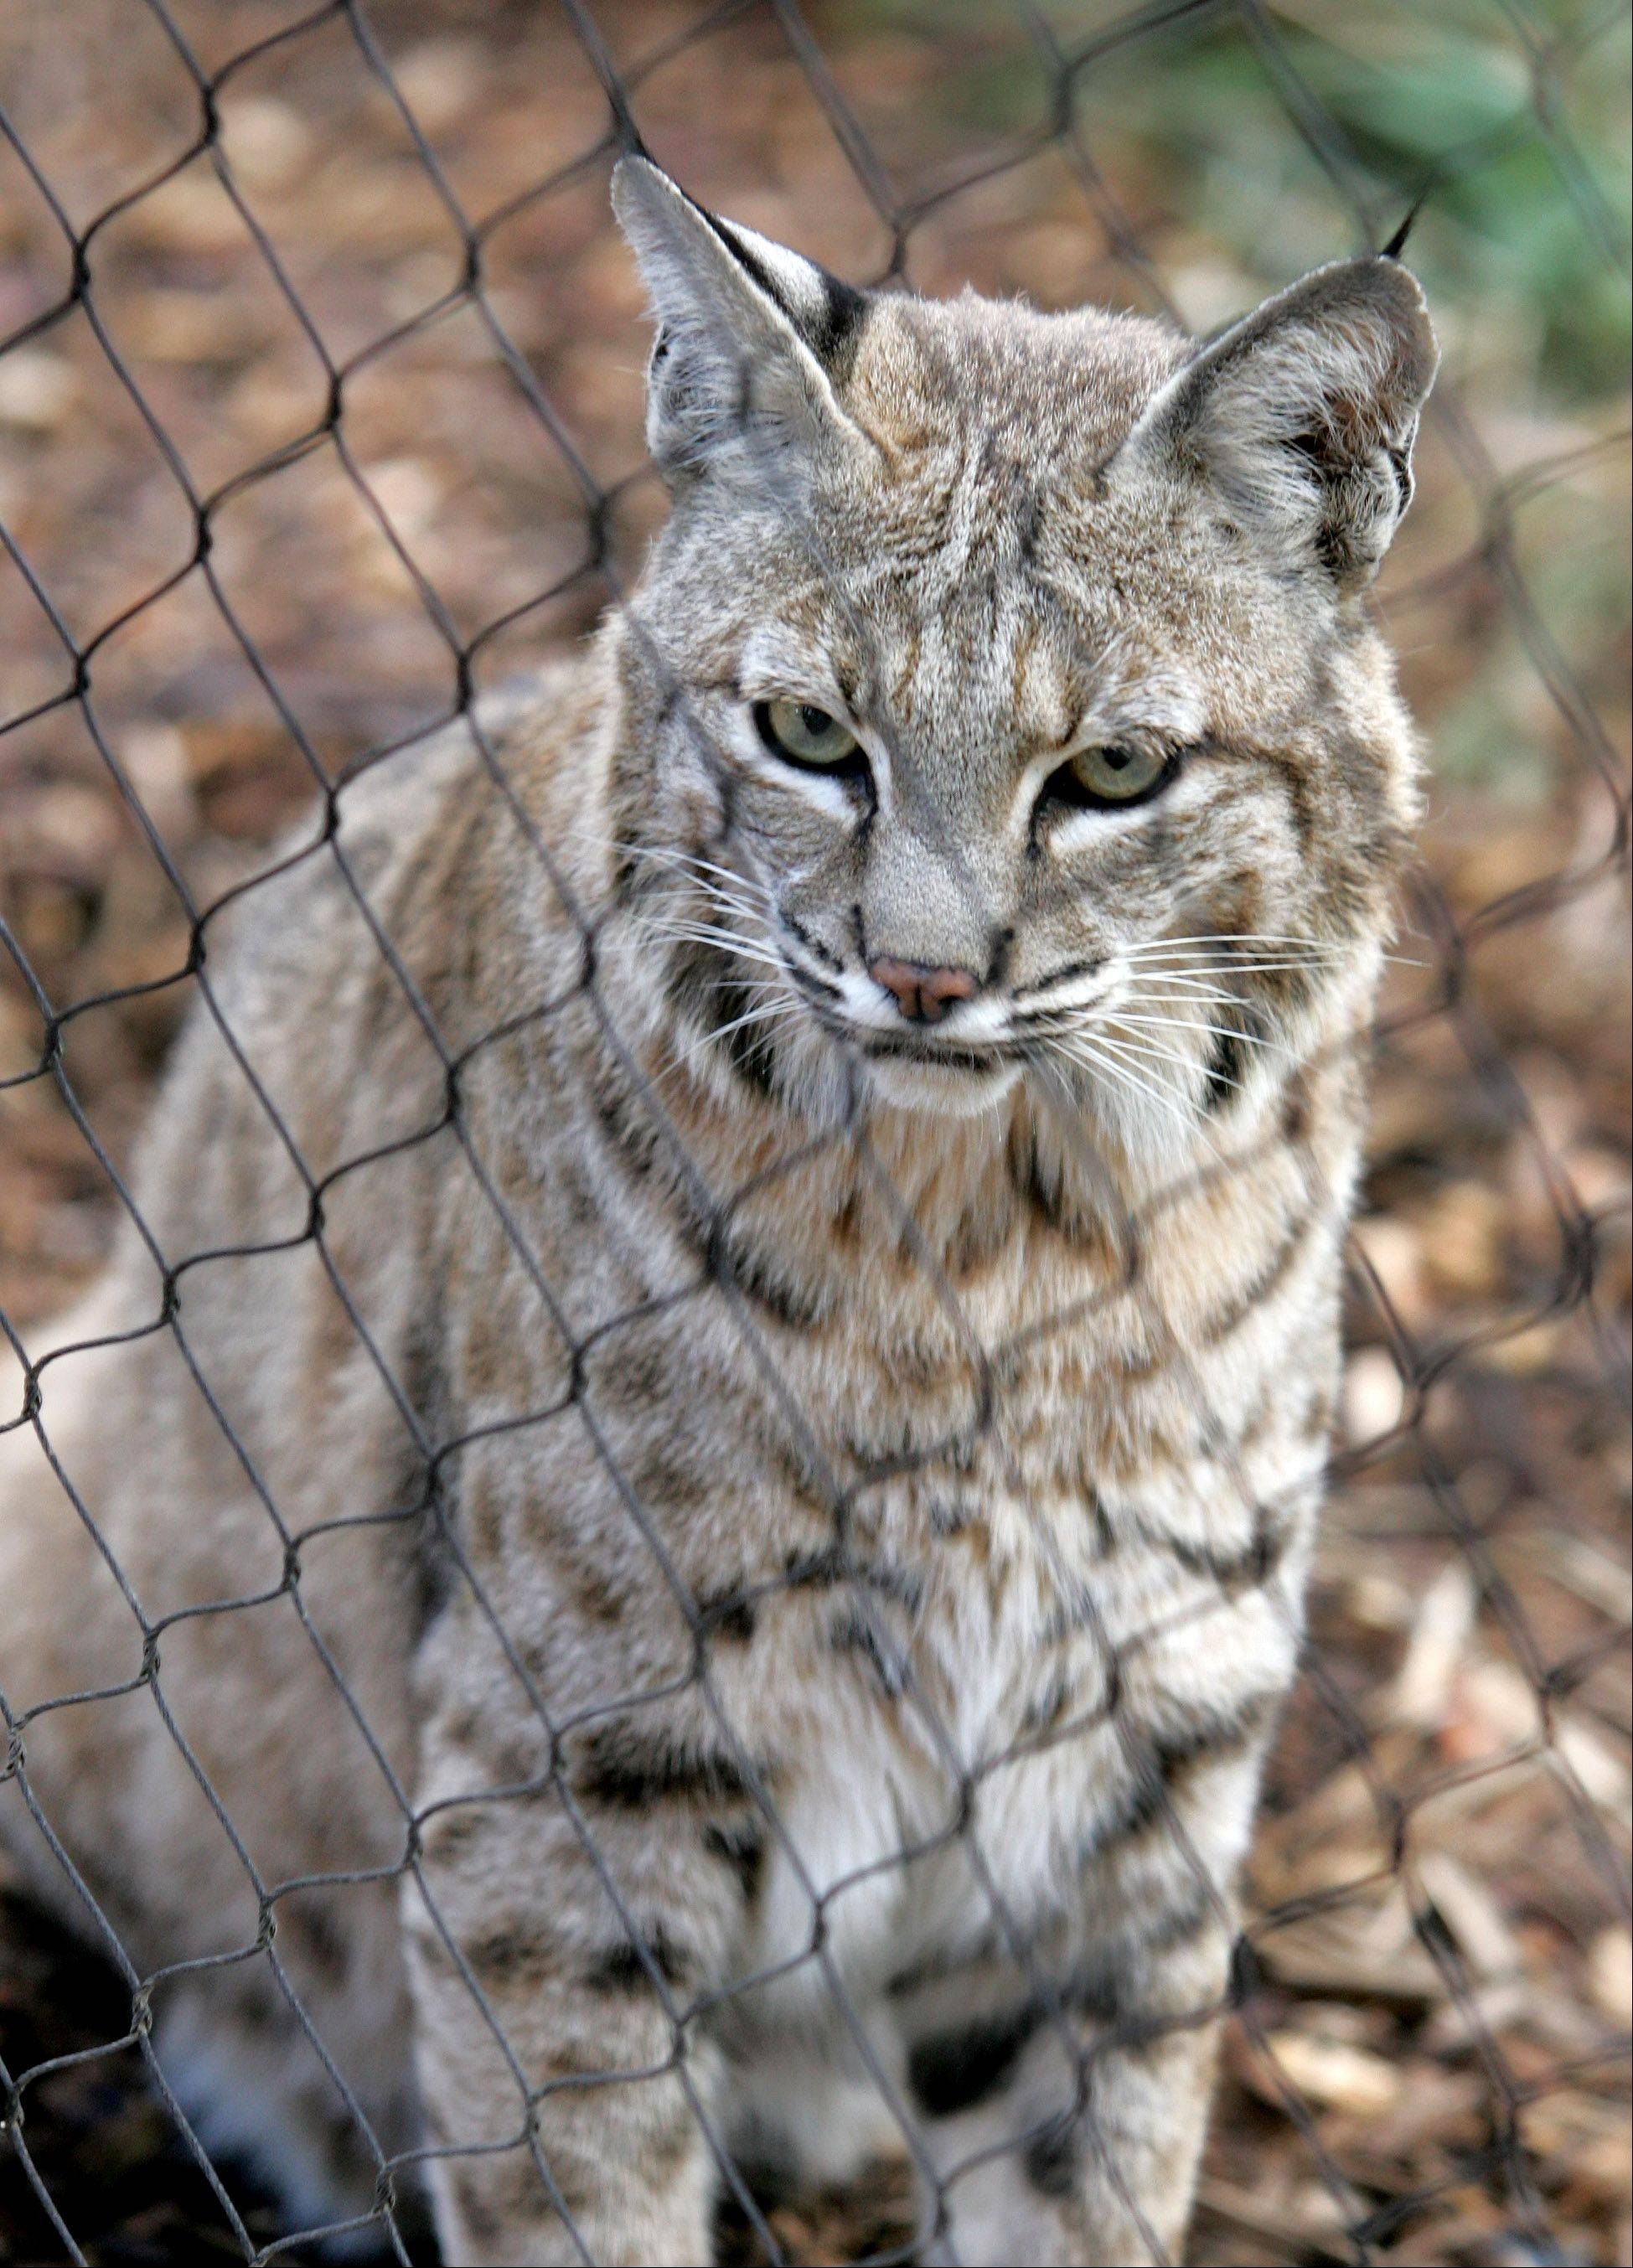 Valentino takes a look out at his new surroundings at Cosley Zoo. Bobcats are one of only two species of wild cats native to Illinois.